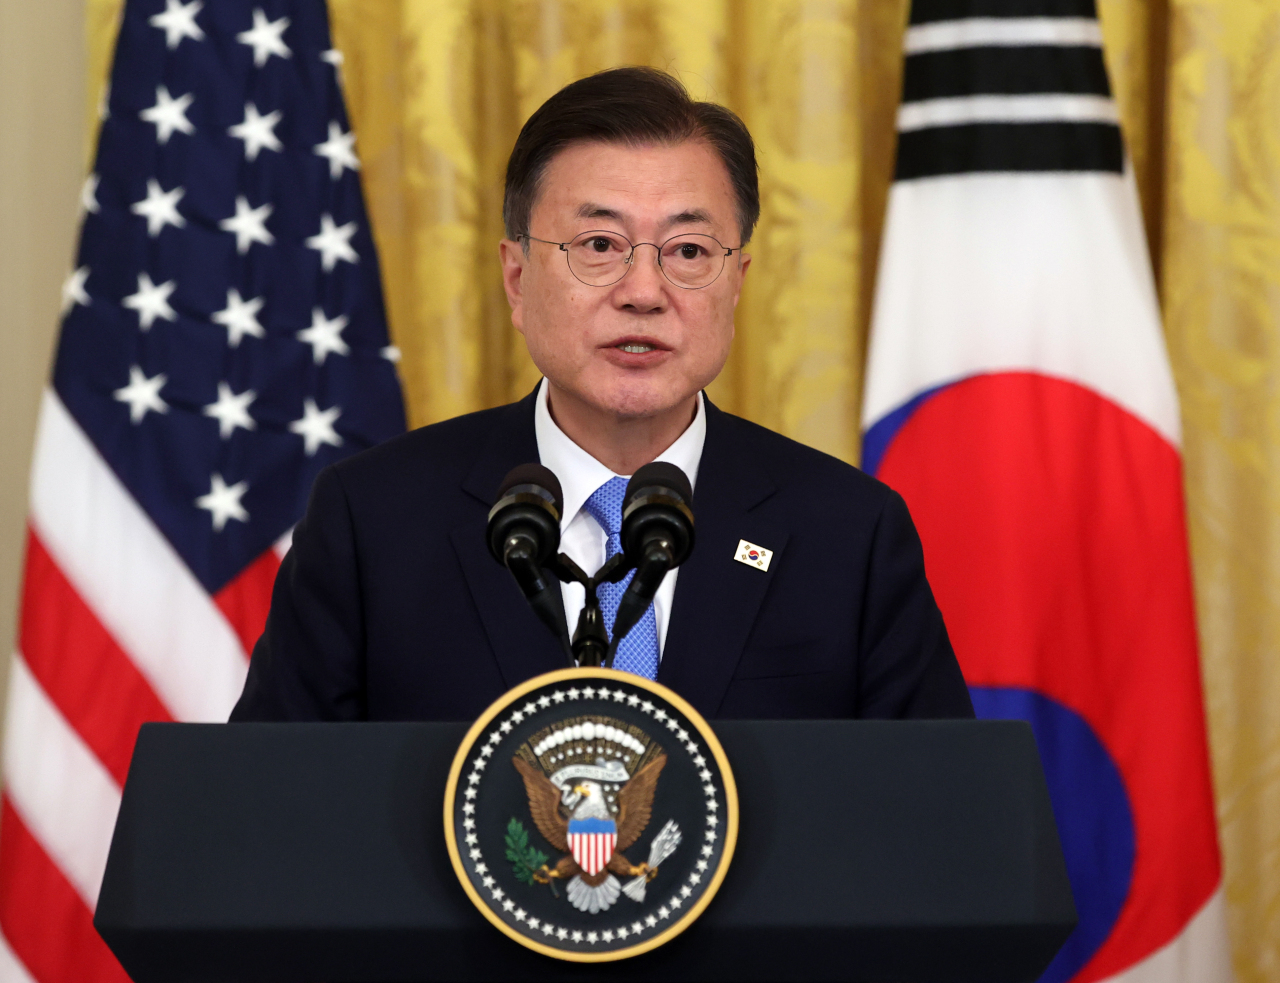 President Moon Jae-in speaks at a news conference after summit talks with US President Joe Biden at the White House on Friday. (Joint Press Corps)